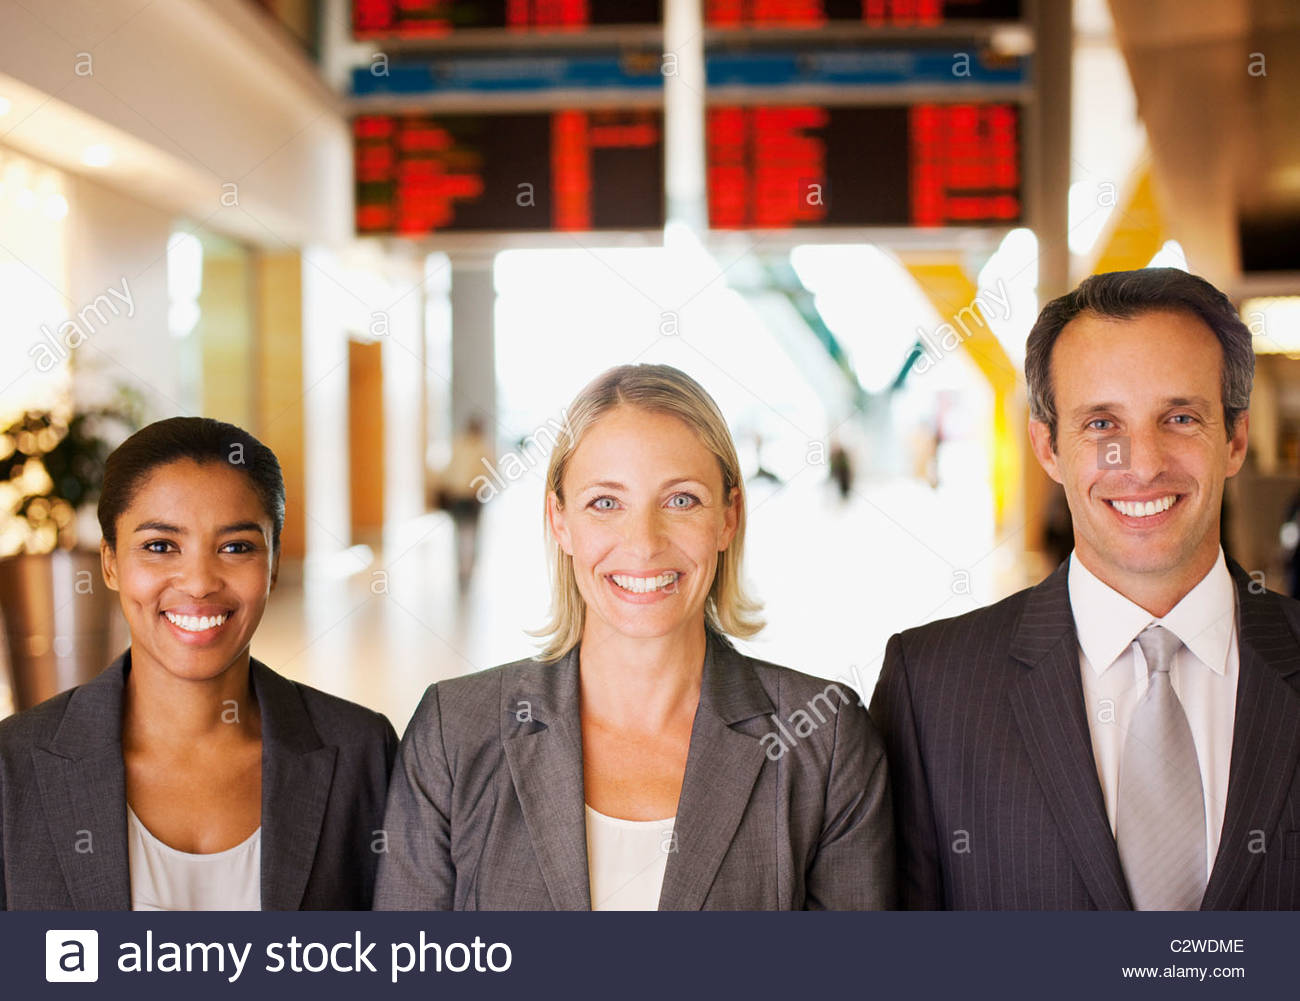 Business people standing together in airport Stock Photo